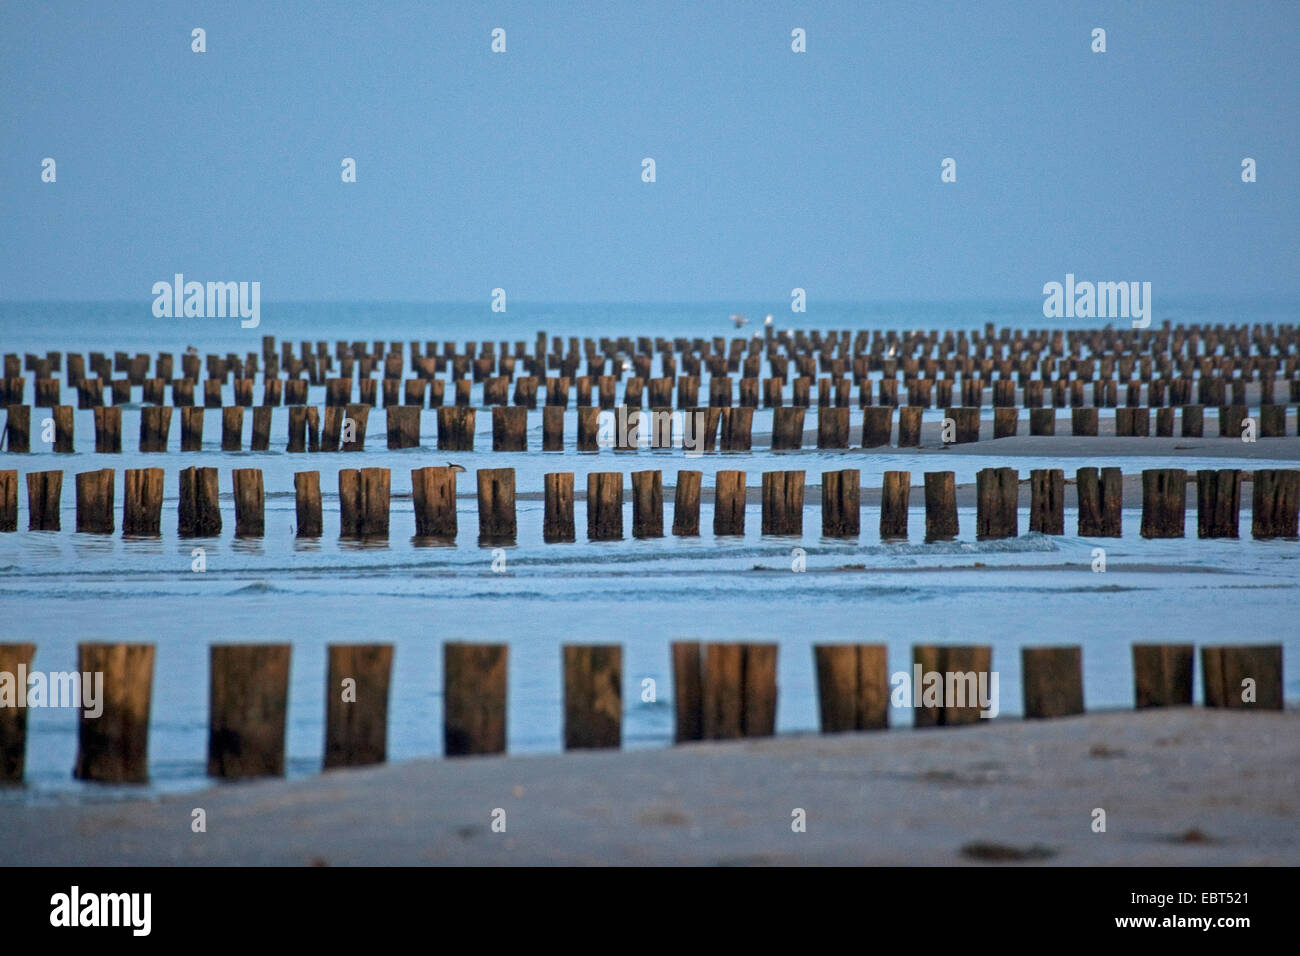 spur dikes at the Baltic Sea, Germany, Mecklenburg-Western Pomerania, Zingst - Stock Image